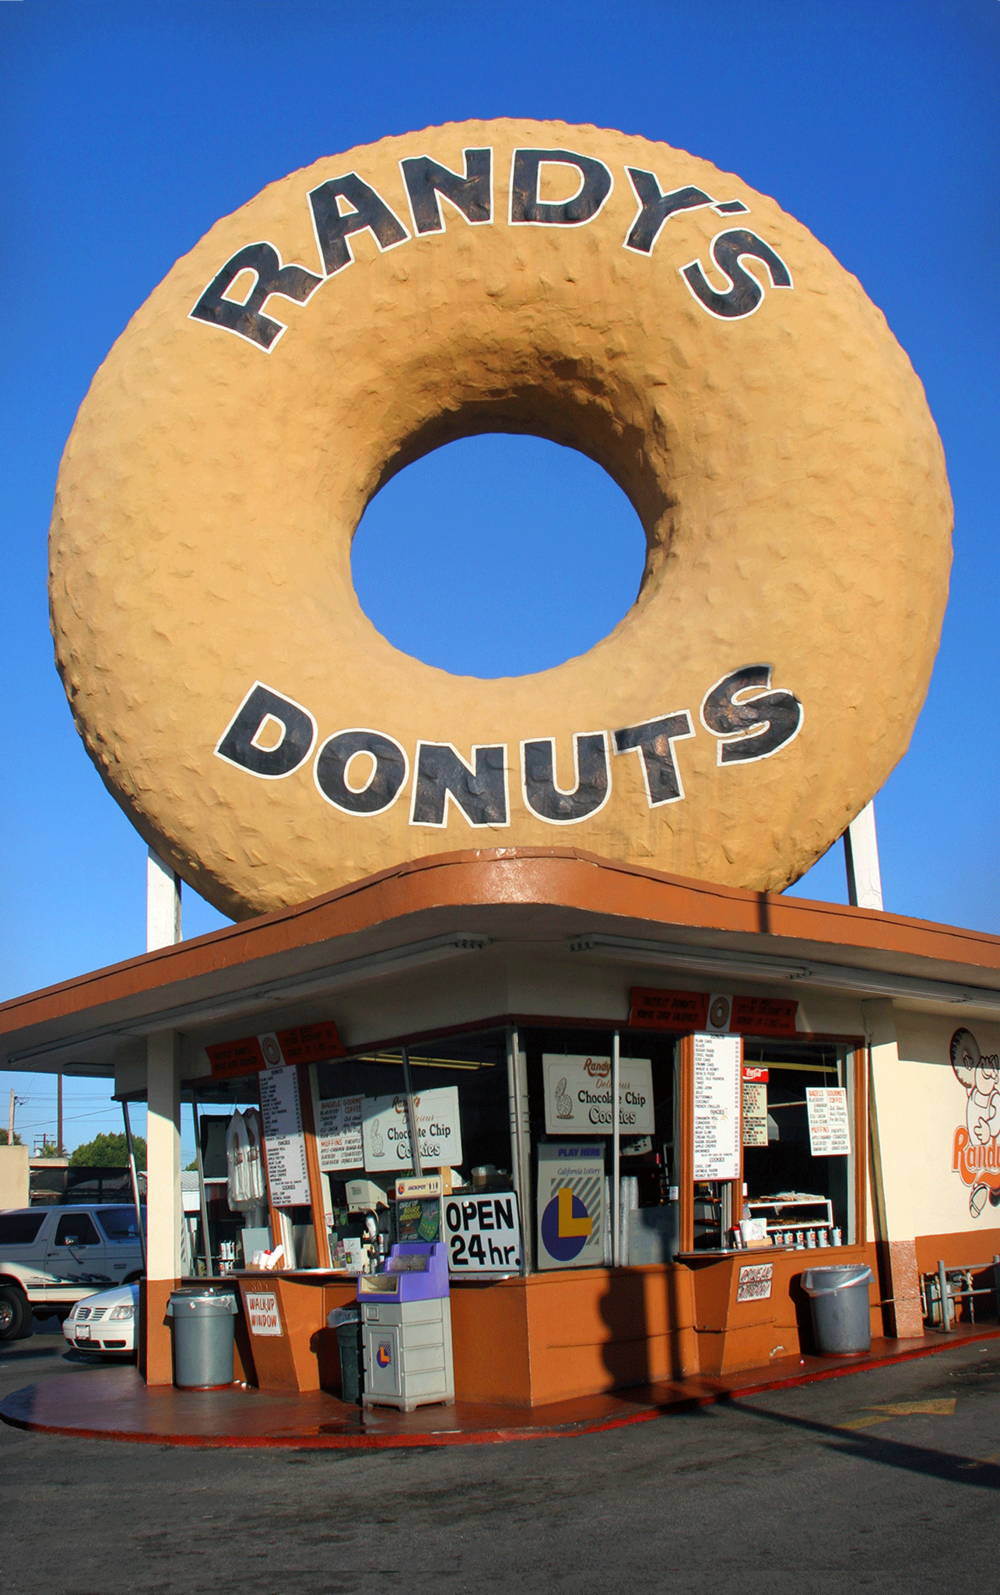 Randy's Donuts - Los Angeles, CA